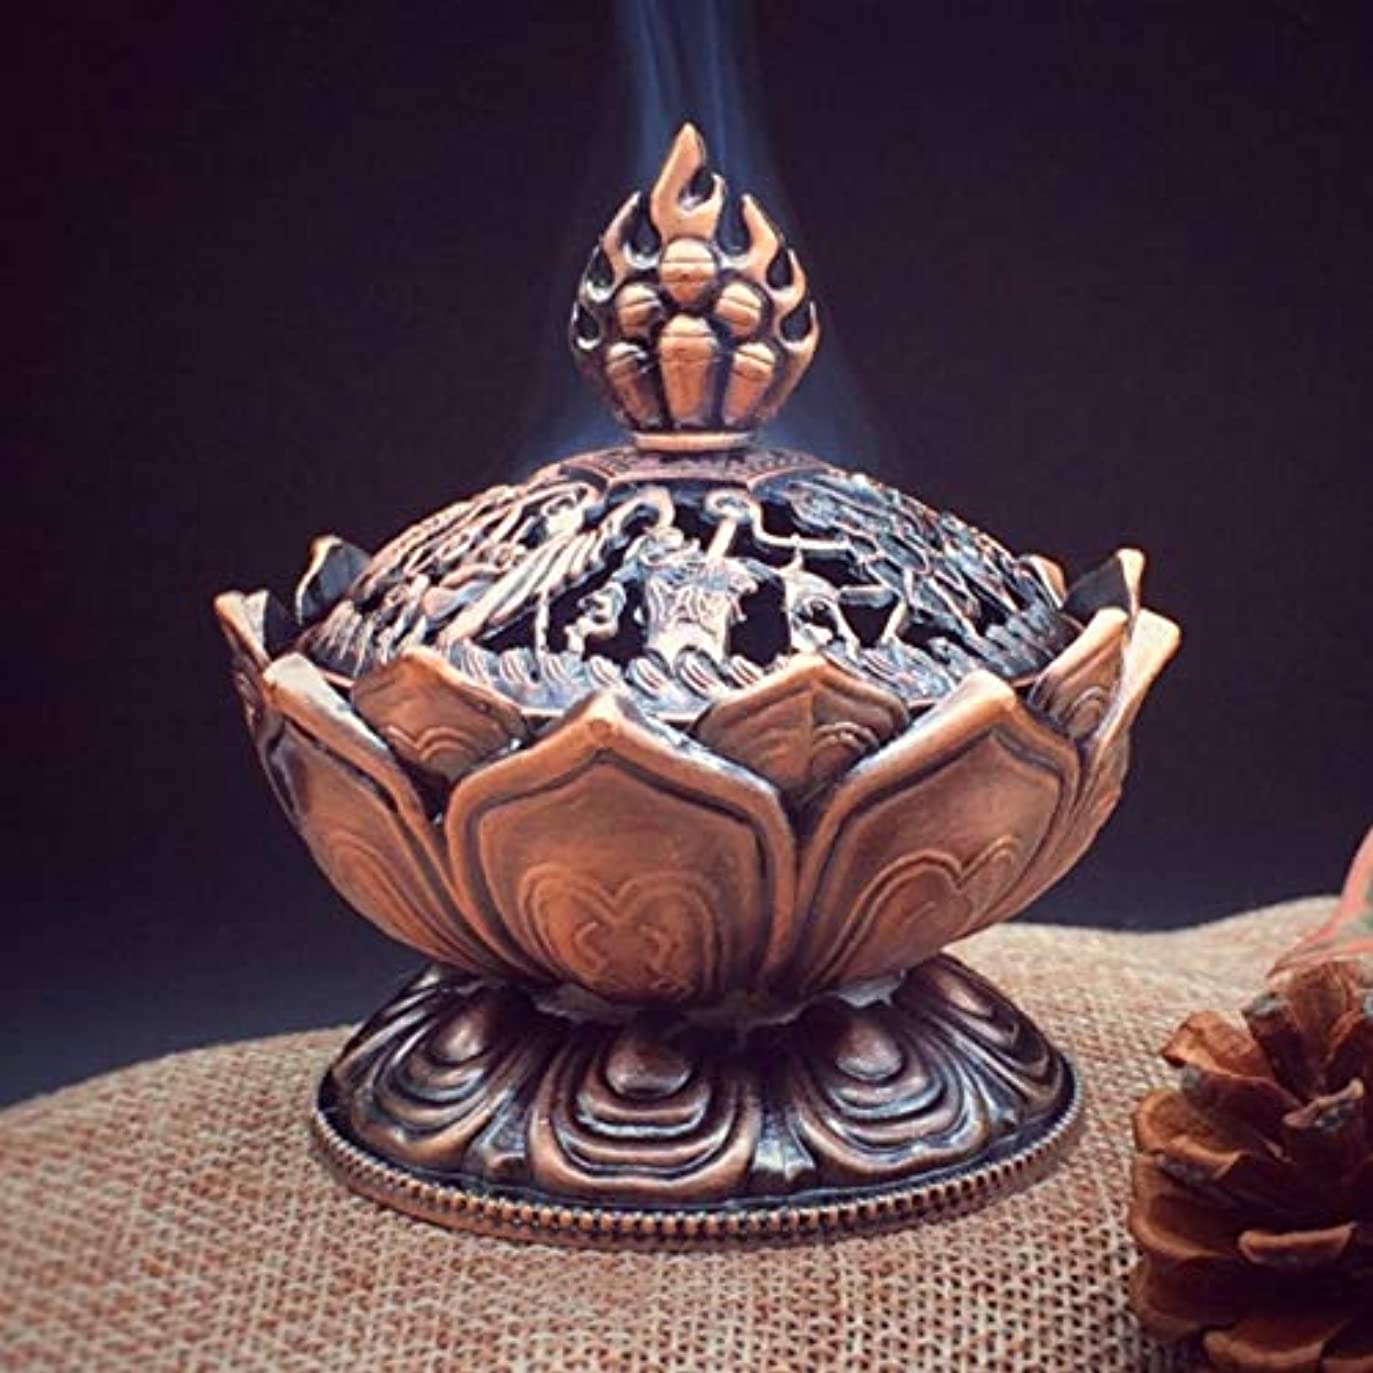 加速する出くわすメトリックHoly Tibetan Lotus Designed Incense Burner Zinc Alloy Bronze Mini Incense Burner Incensory Metal Craft Home Decor